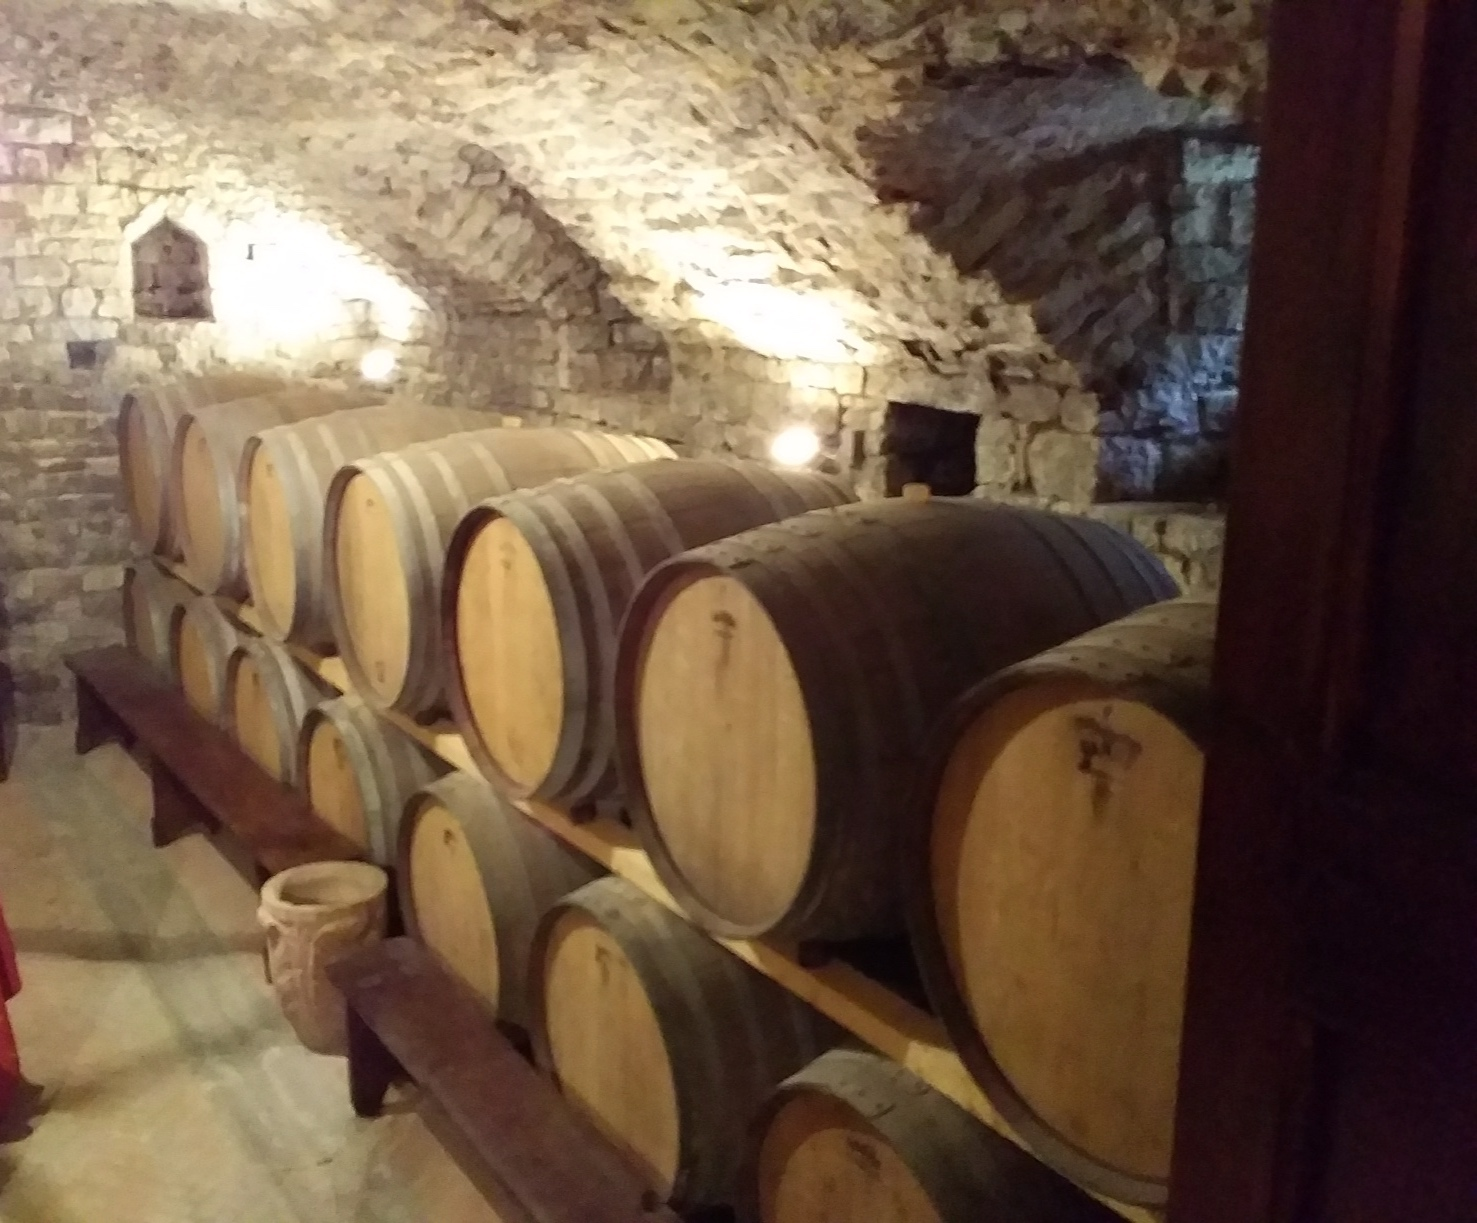 The old wine cellar and tasting room at Canonica a Cerreto